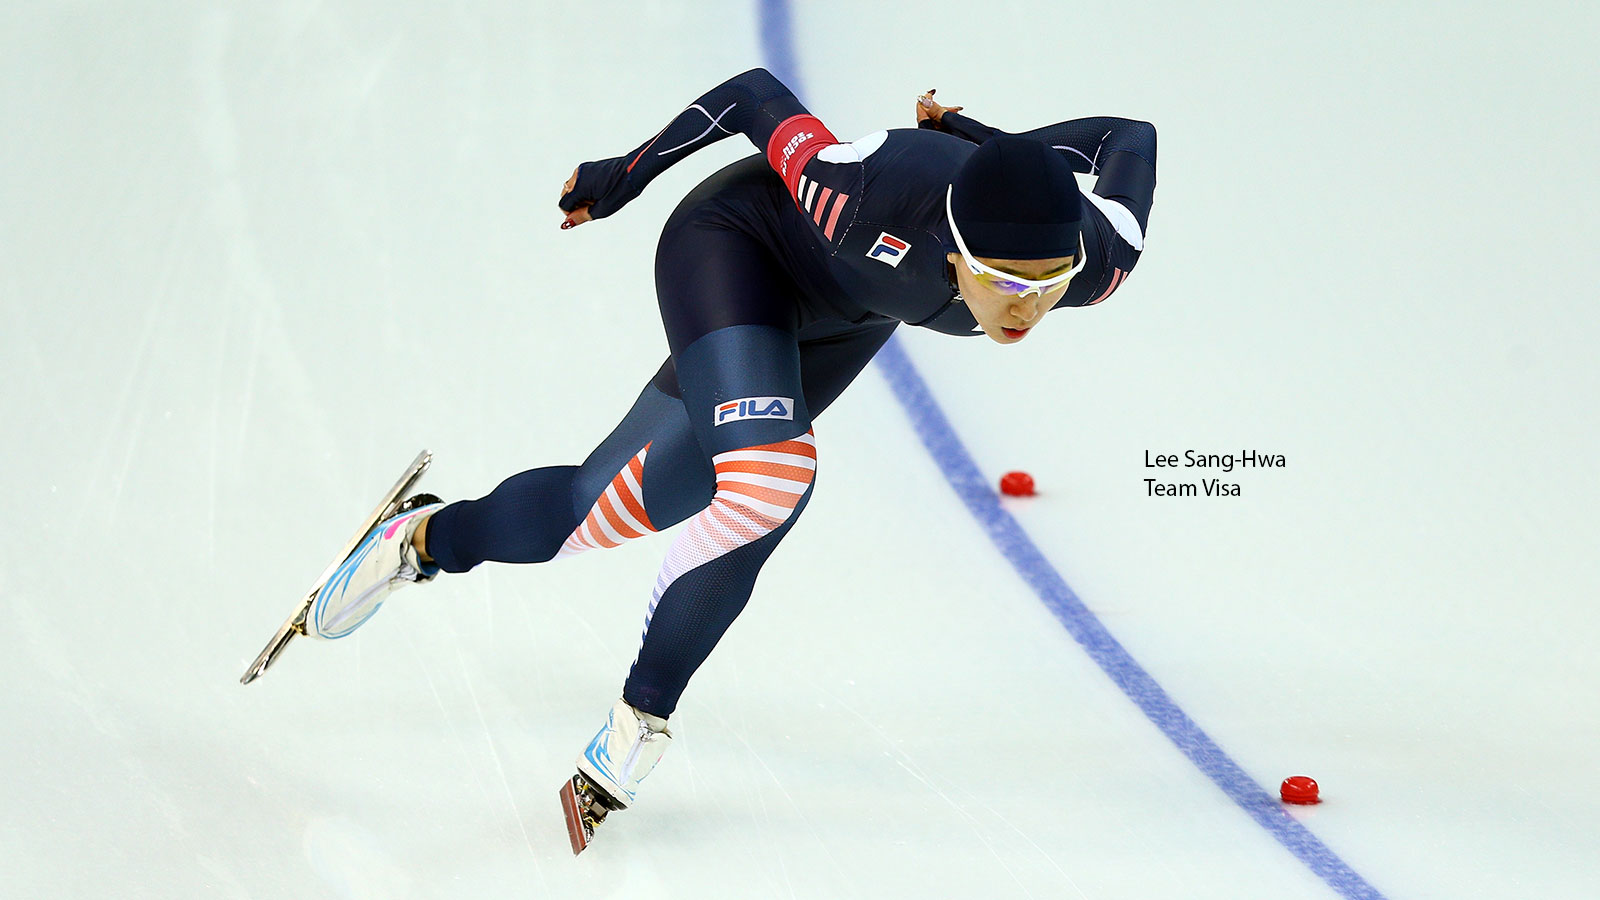 Lee Sang-Hwa, Team Visa speed skater